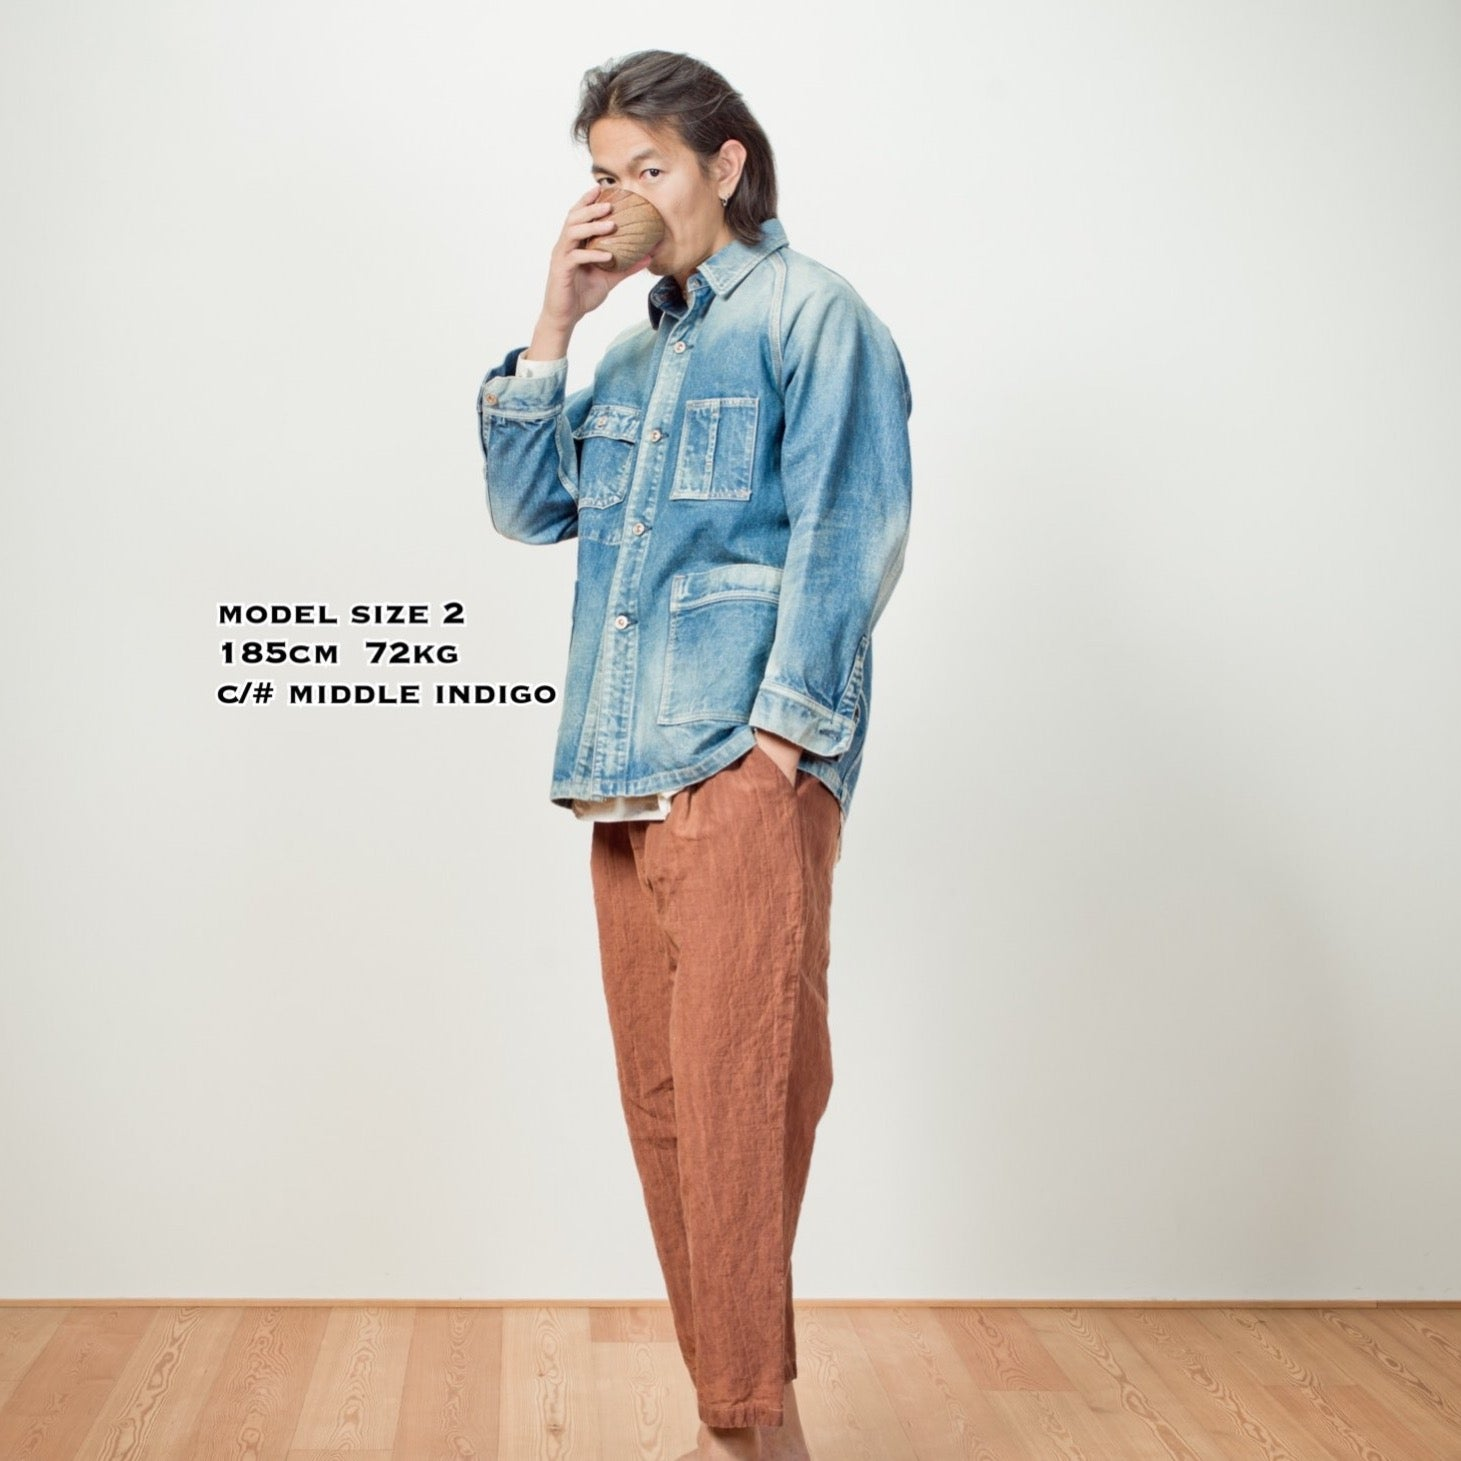 C.T.L TRAVELING JACKET - MIDDLE INDIGO